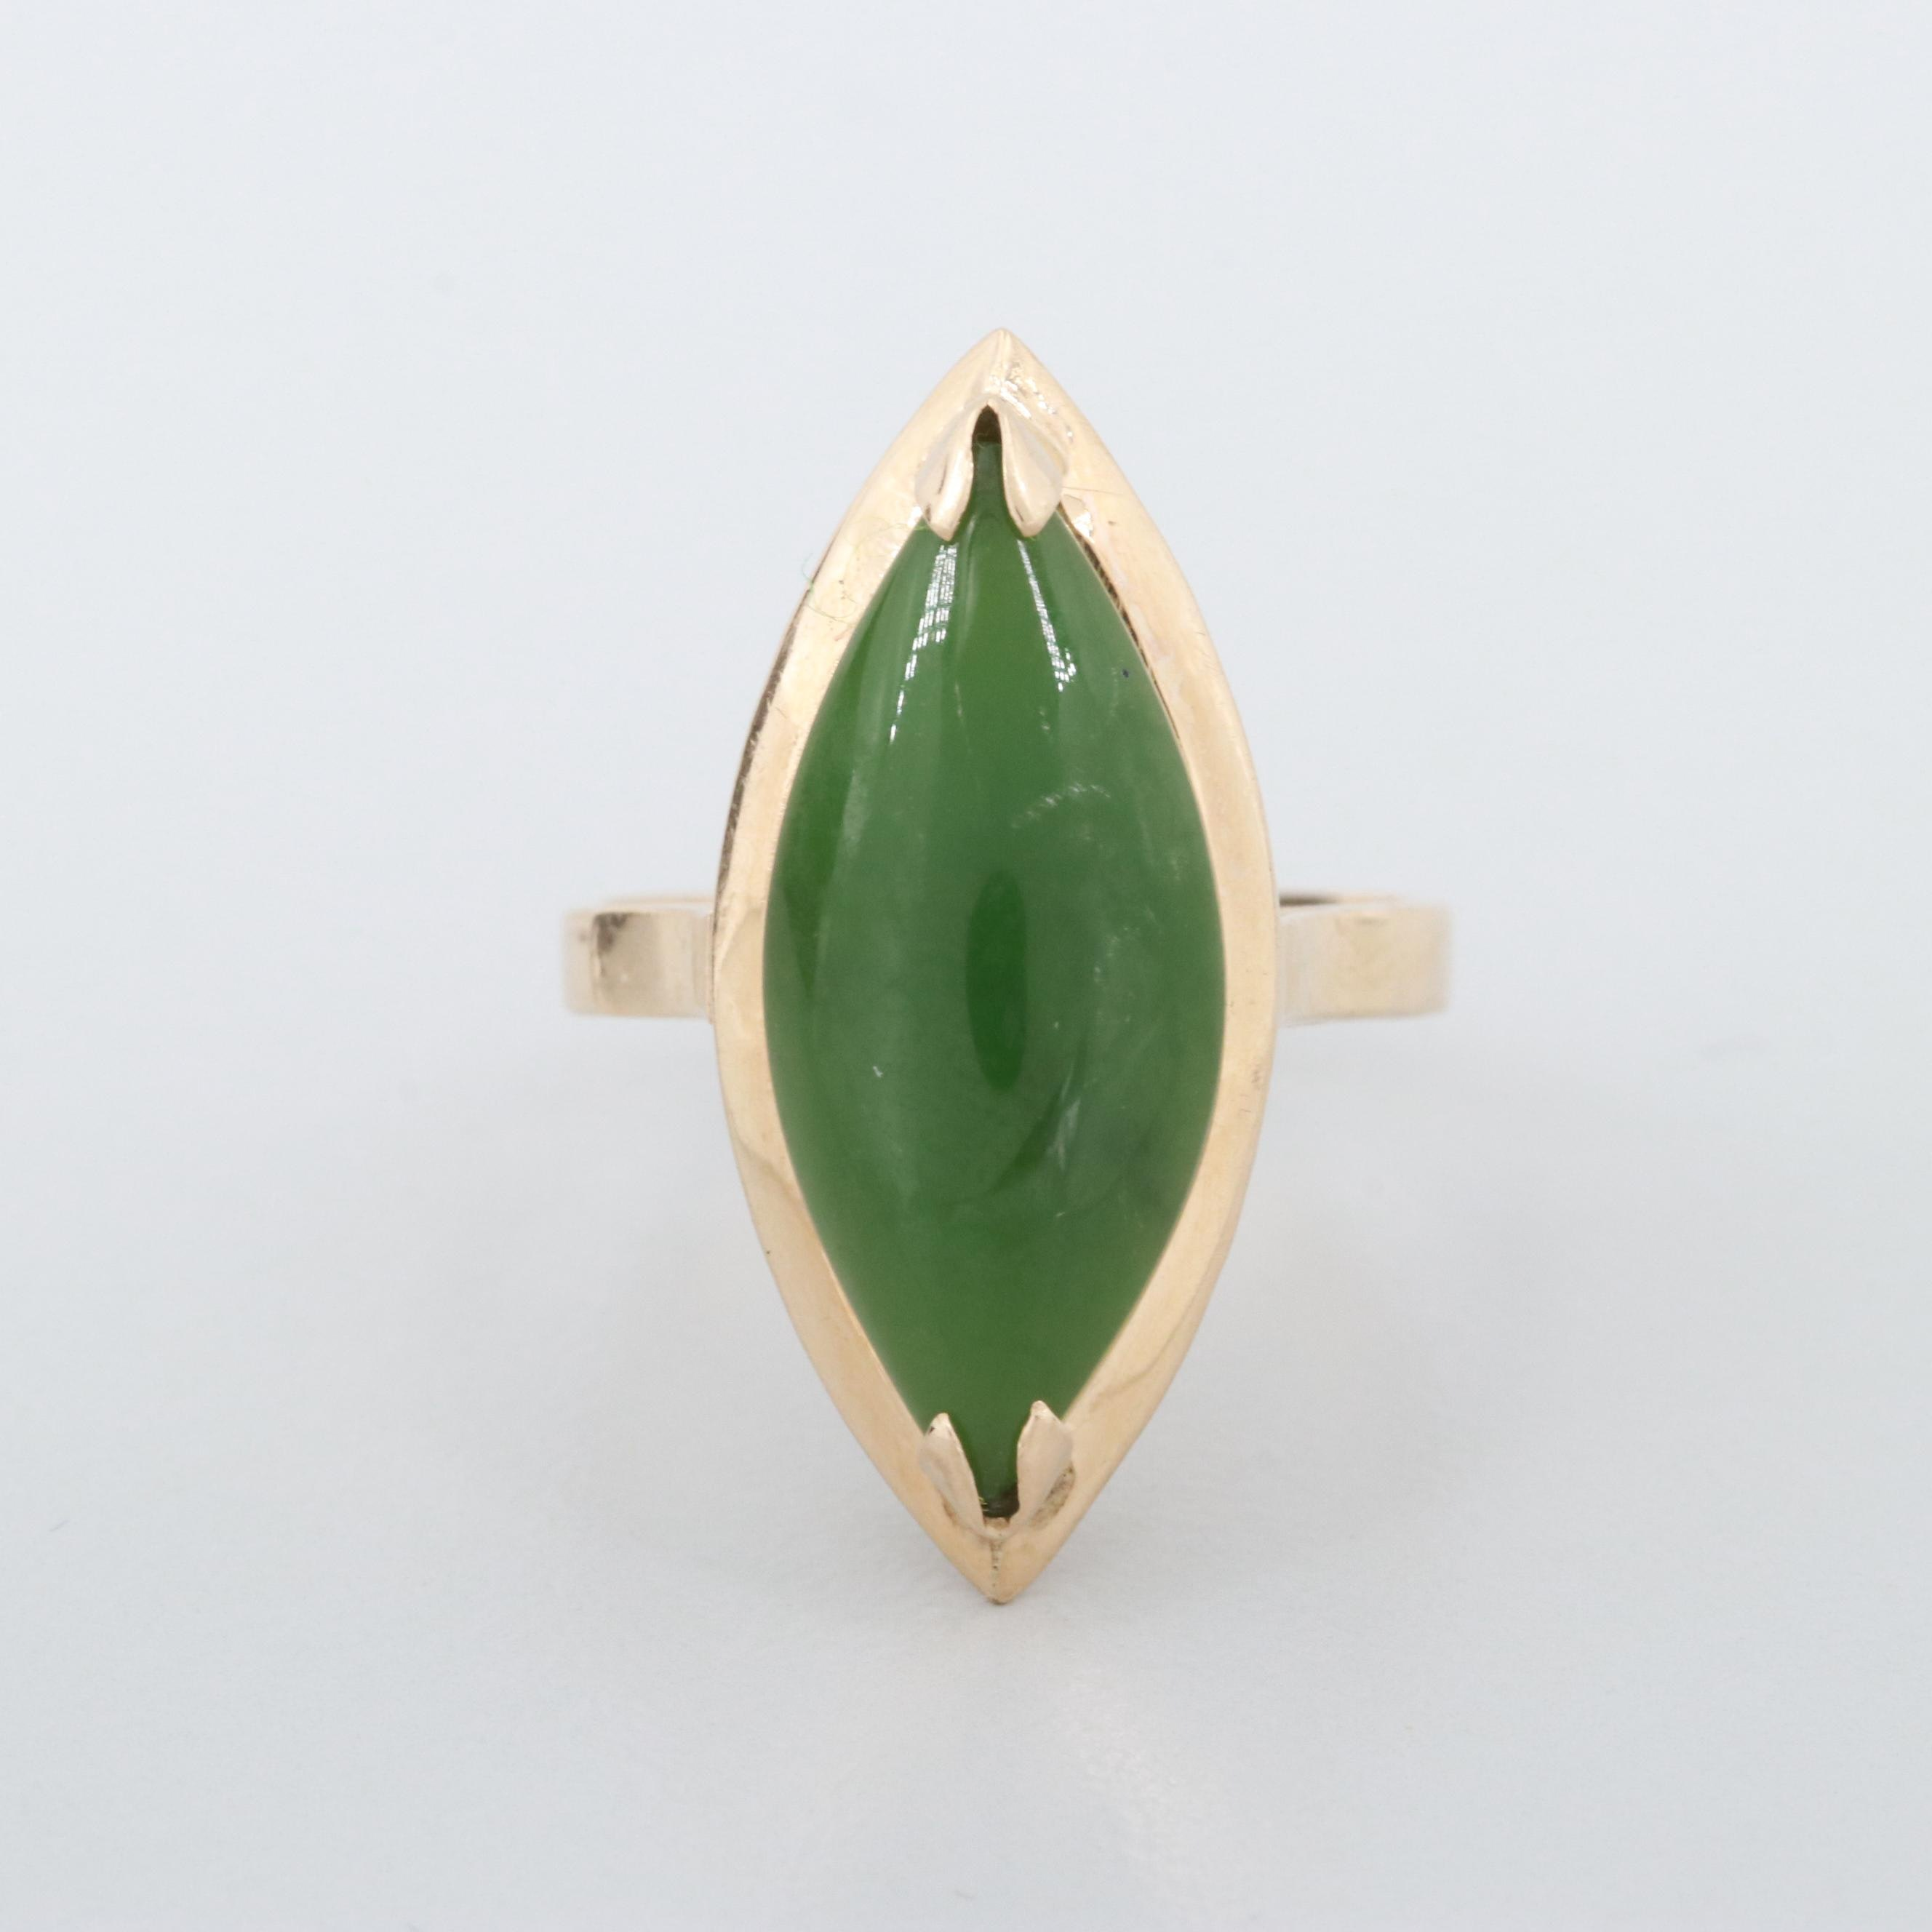 Vintage 14K Yellow Gold Nephrite Ring